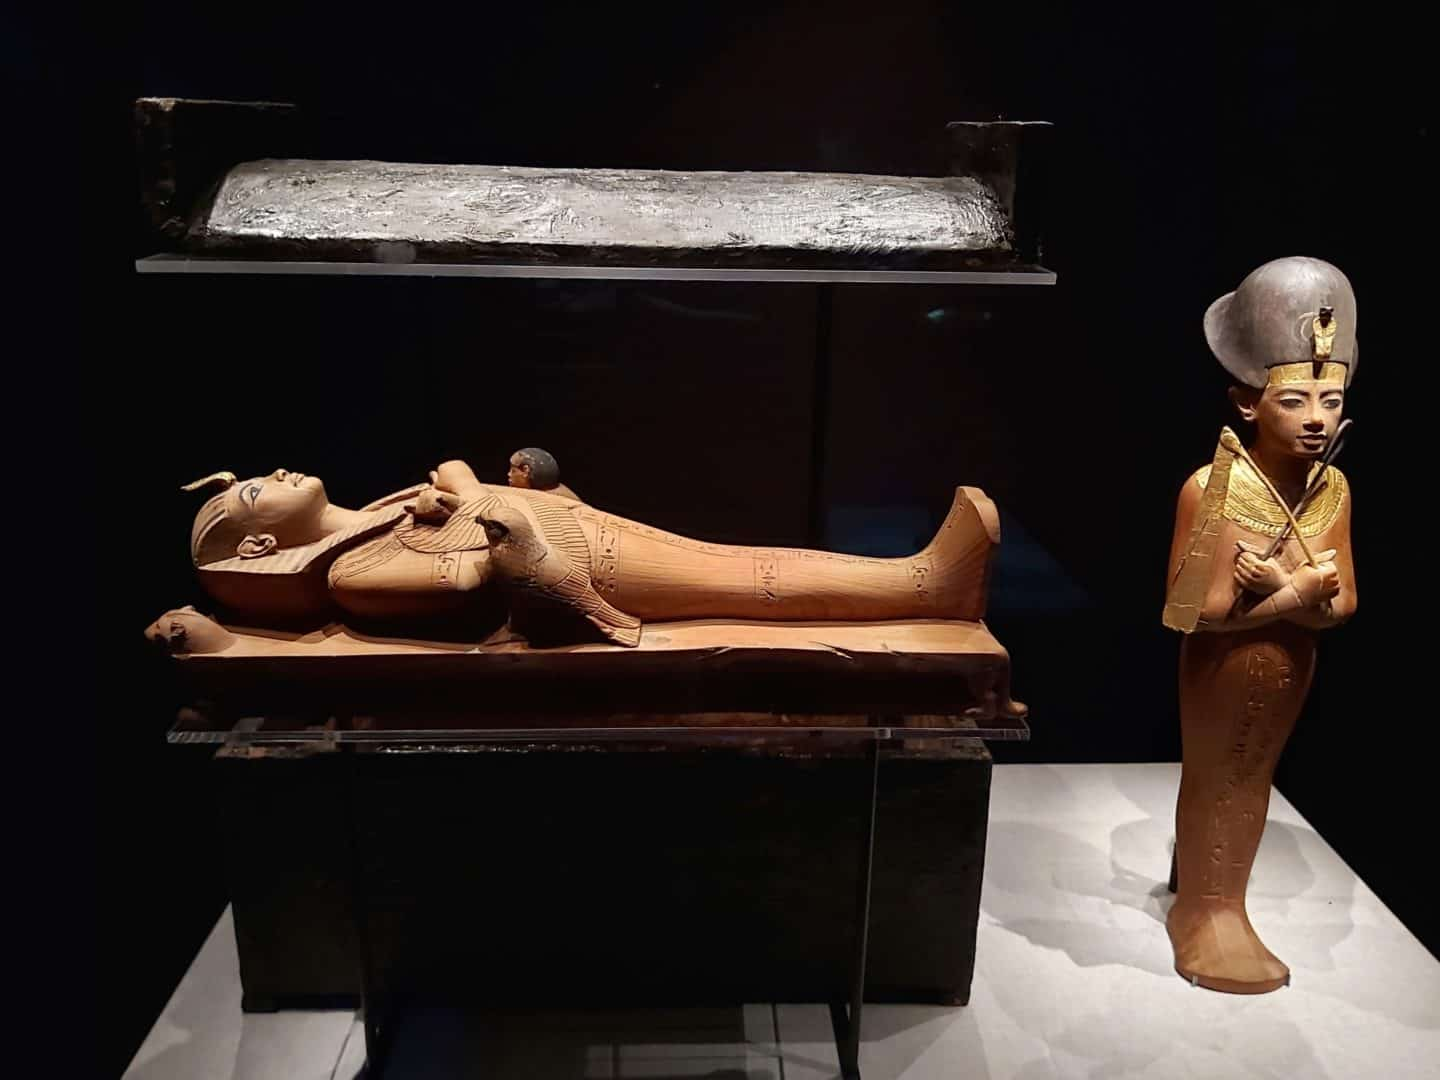 Visiting Tutankhamun: Treasures of the Golden Pharaoh with children